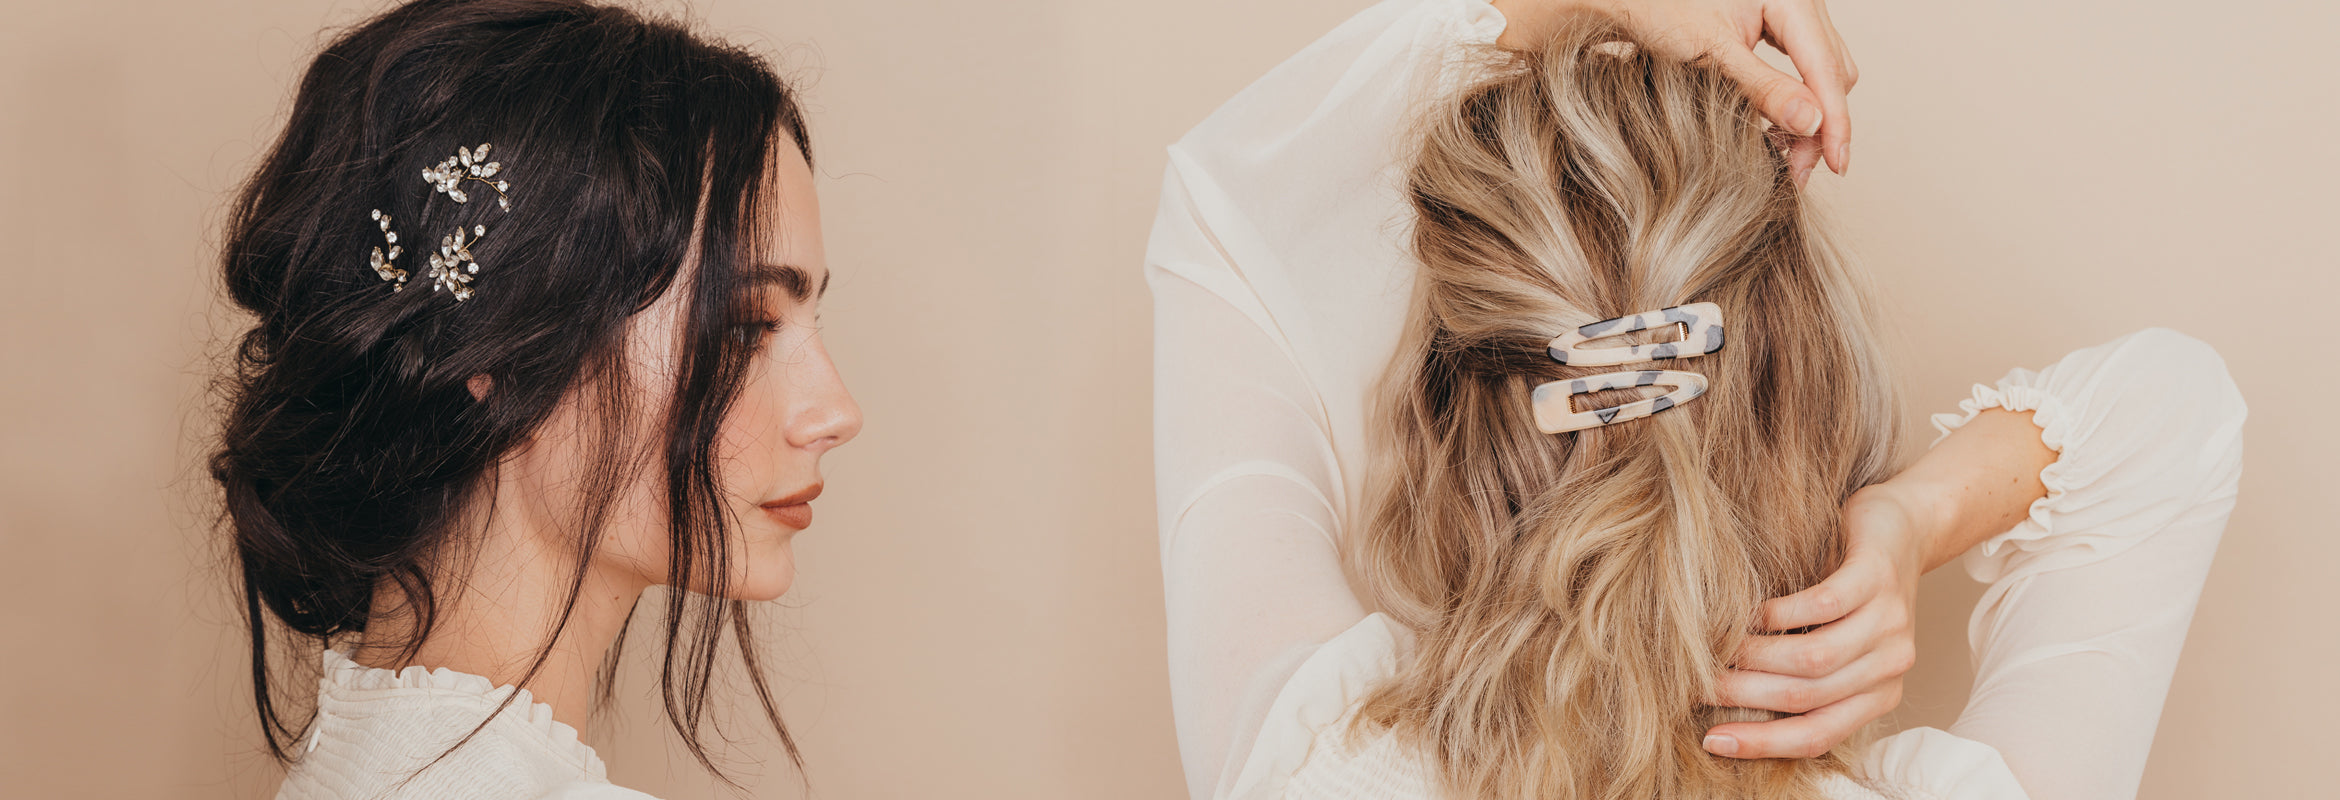 olive + piper Hair Accessories